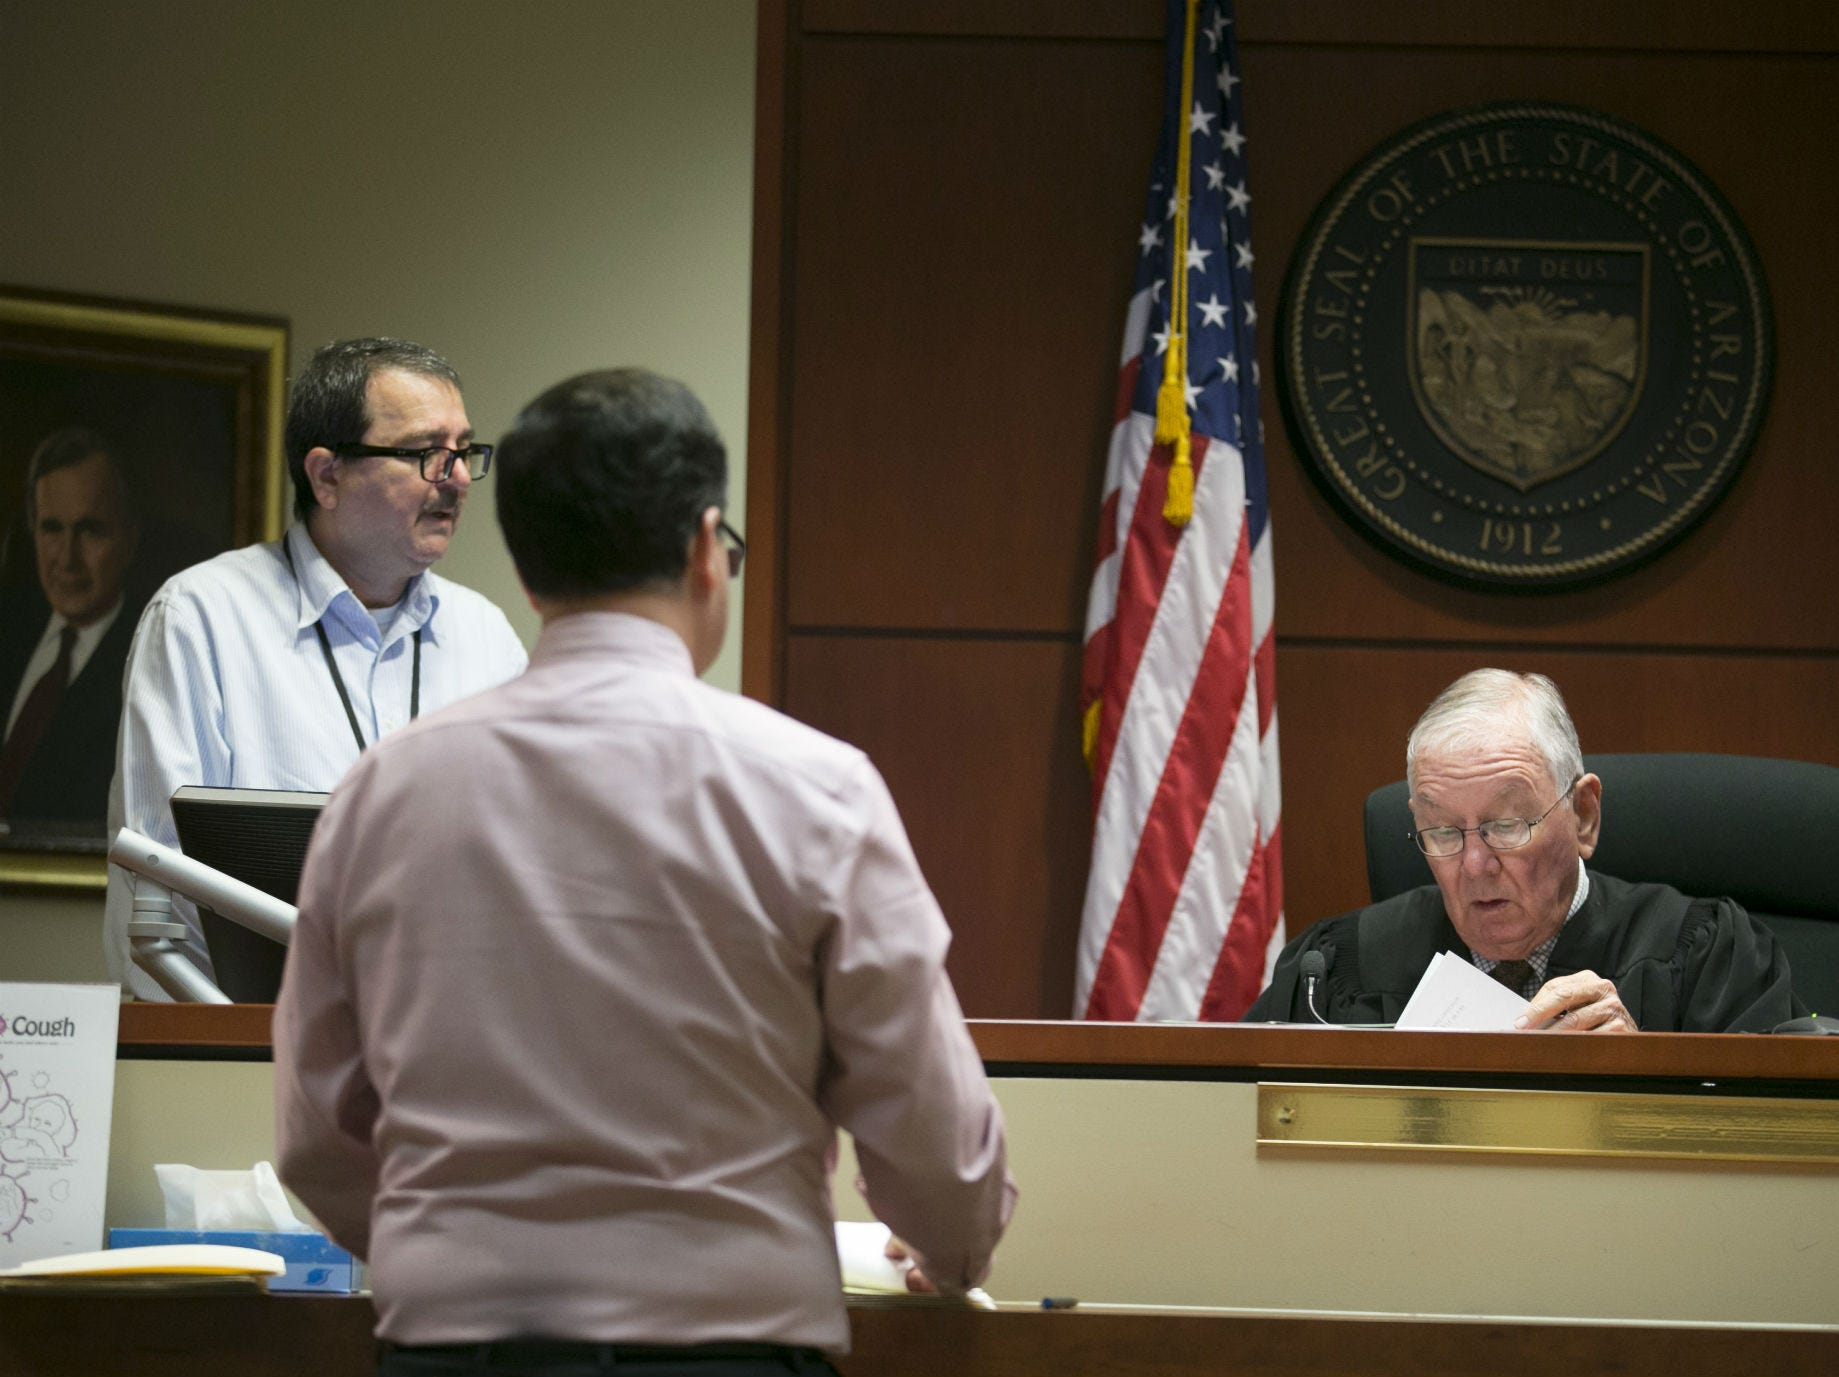 Judge Pro Tempore Reid Southern checks out paperwork as Paul Henderson (center left), an attorney for the landlord, and court clerk Carlos Arce look on during an eviction court hearing at the Justice Court in Surprise on Aug. 16, 2018. Before a tenant's eviction hearing, the landlord's attorney usually offers a stipulated judgment that often produces the same result as if a tenant hadn't shown up at all. People admit they didn't pay rent. They agree to pay a monetary judgment that can be hundreds of dollars more than the rent they owed. And still they have to move out.